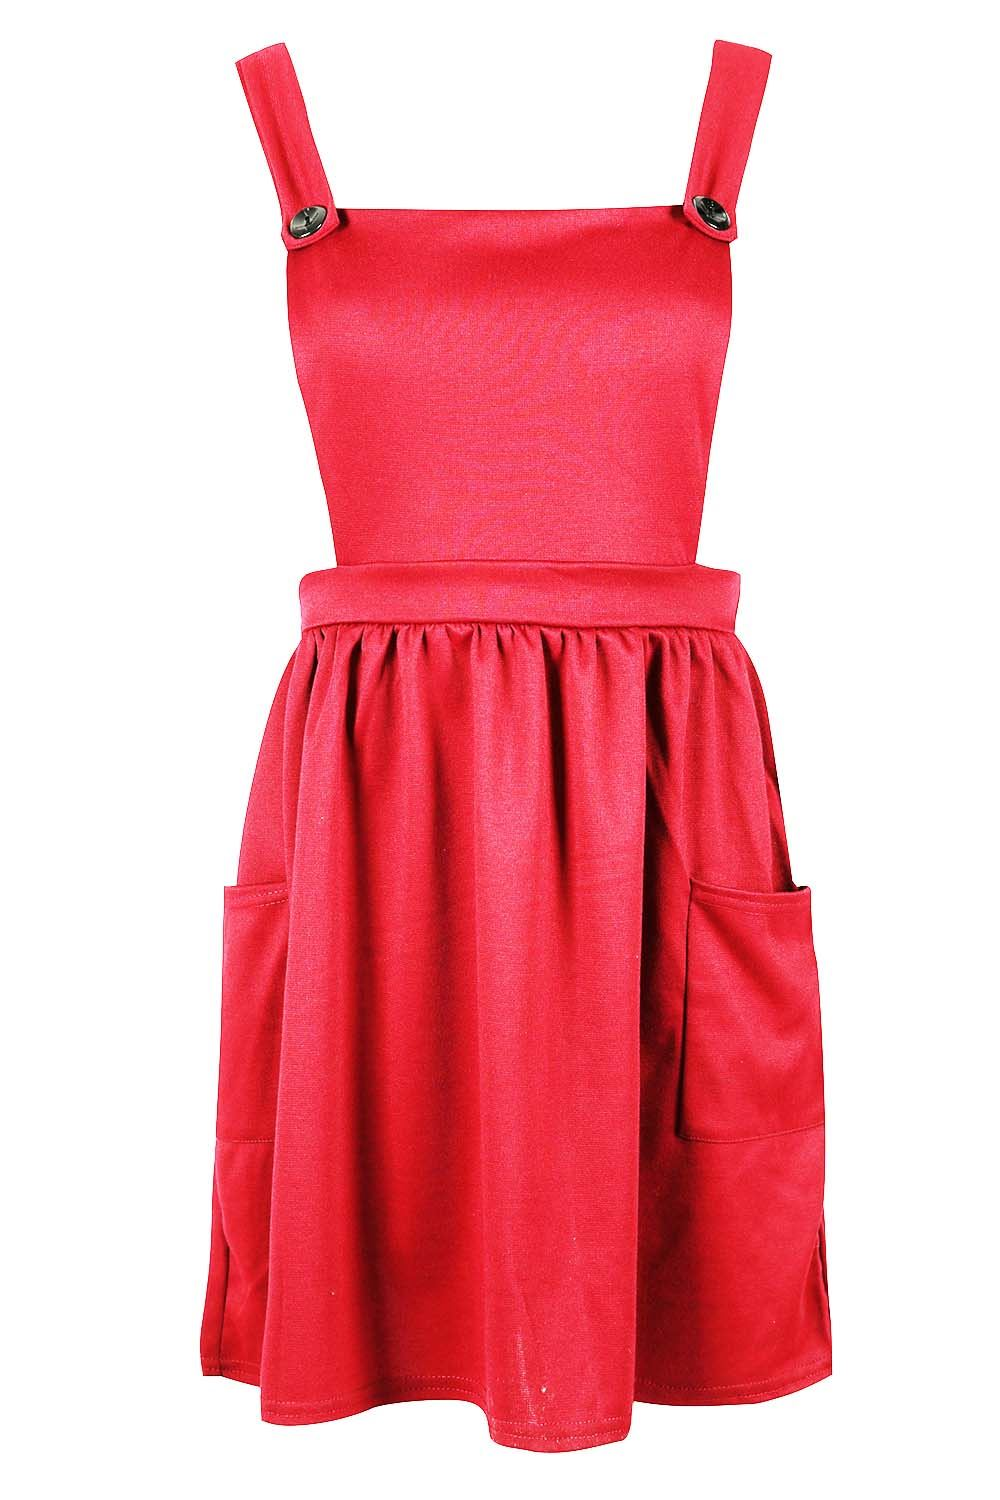 Womens-Ladies-Dungarees-Pinafore-Cross-Back-Strappy-Skater-Flared-Dress-Playsuit thumbnail 6